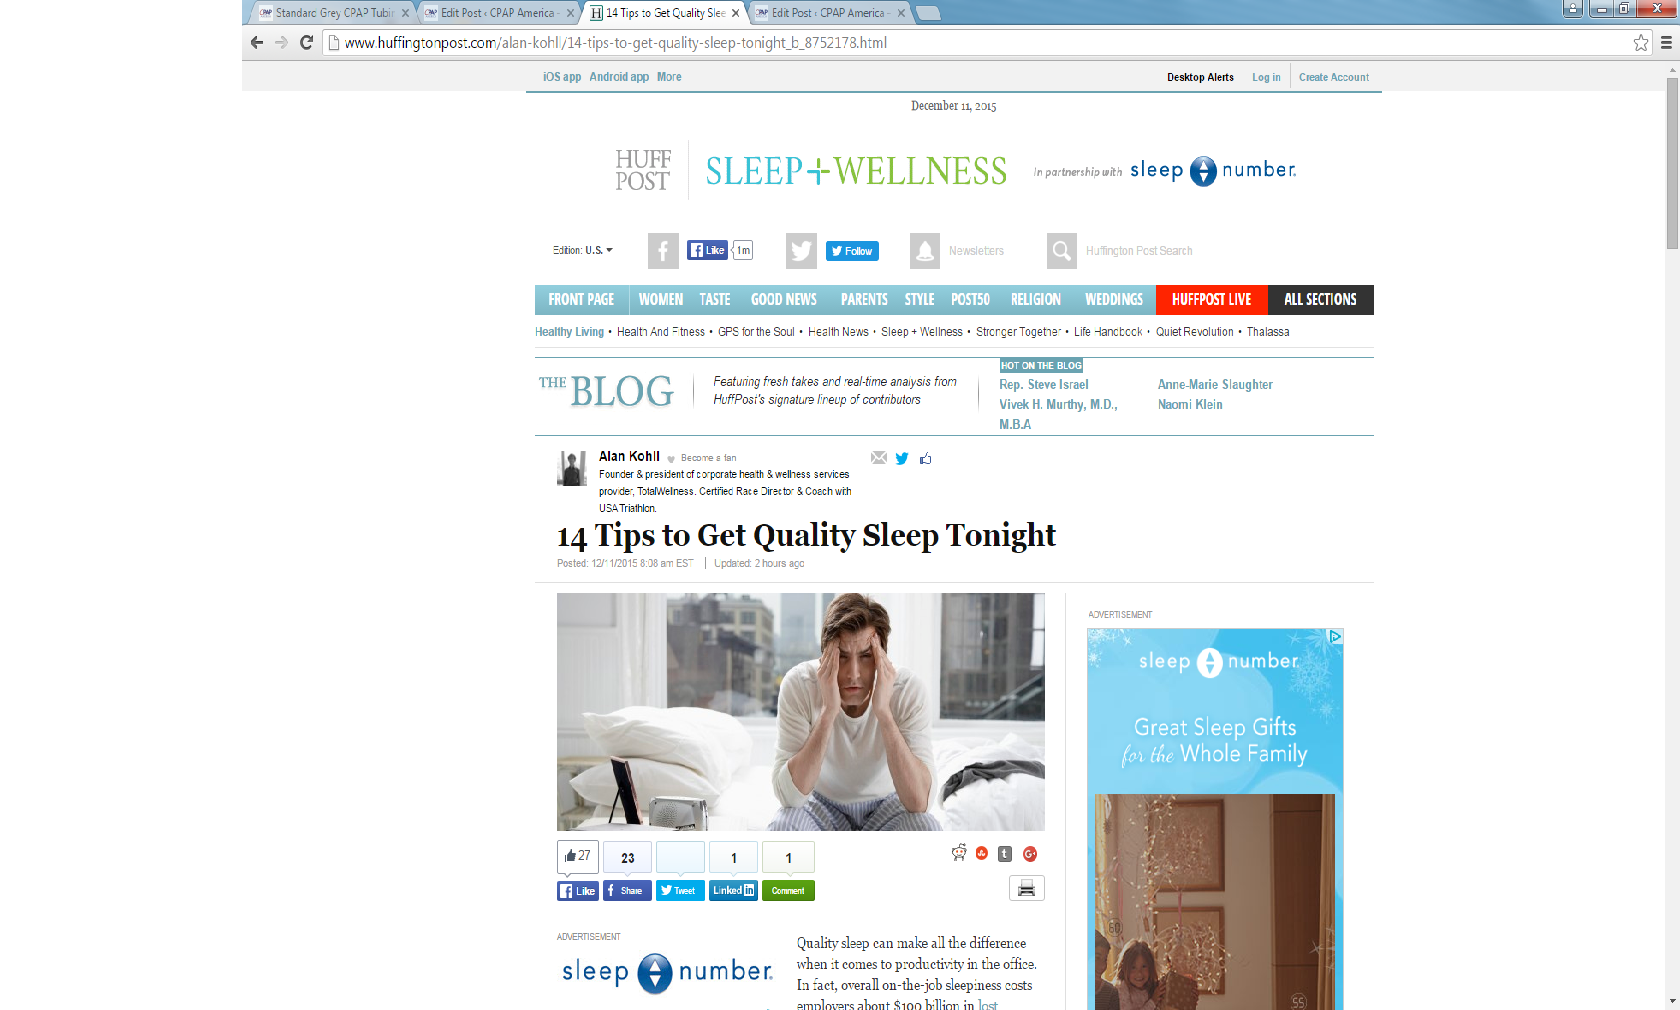 Looking for quality sleep? Check out these tips